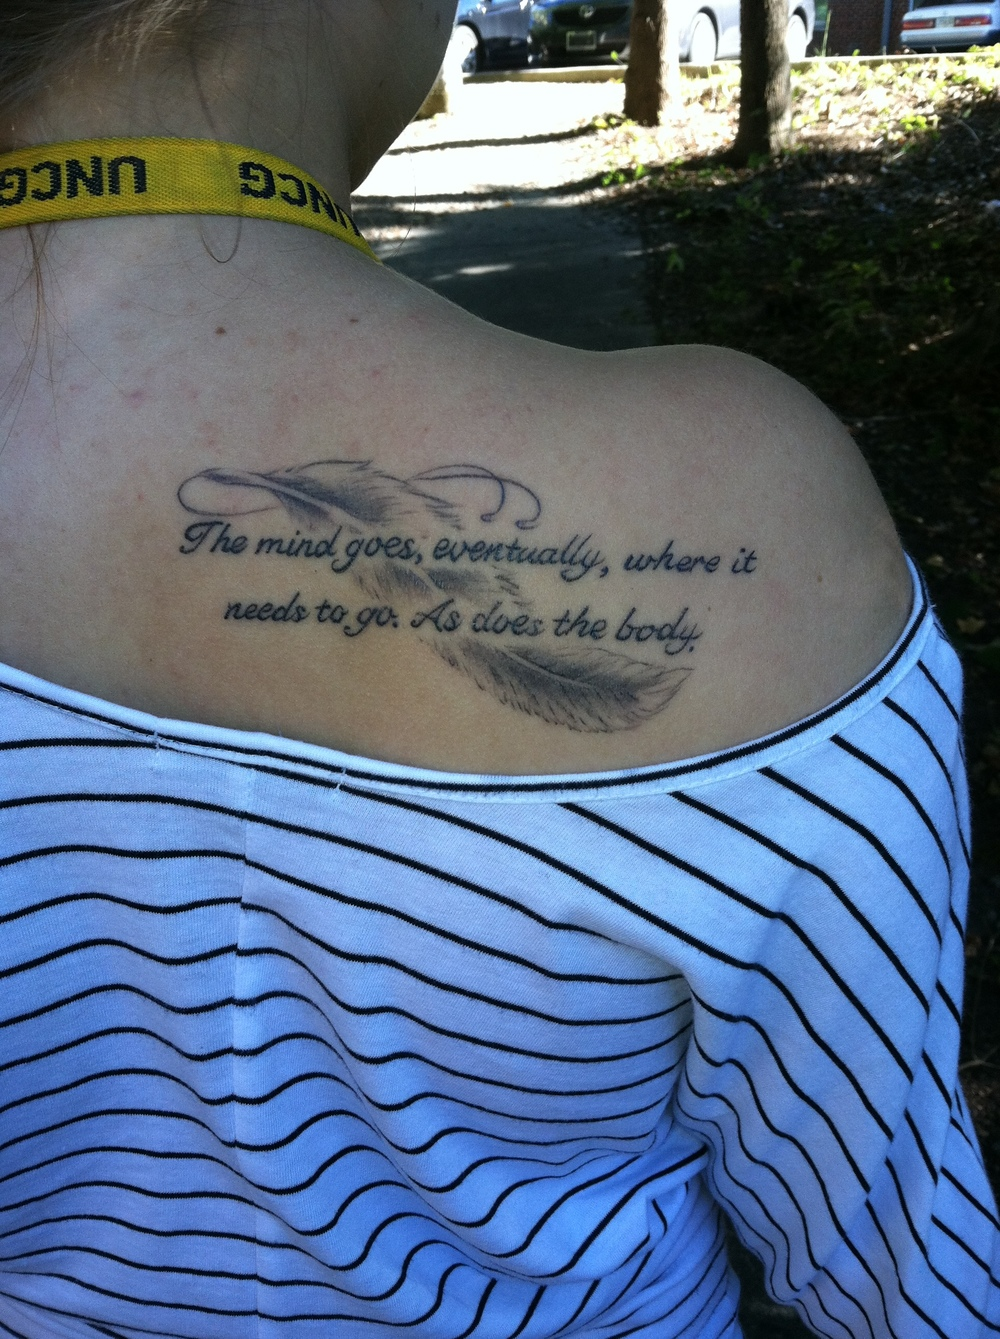 A friend of Avonlea's designed her tattoo.